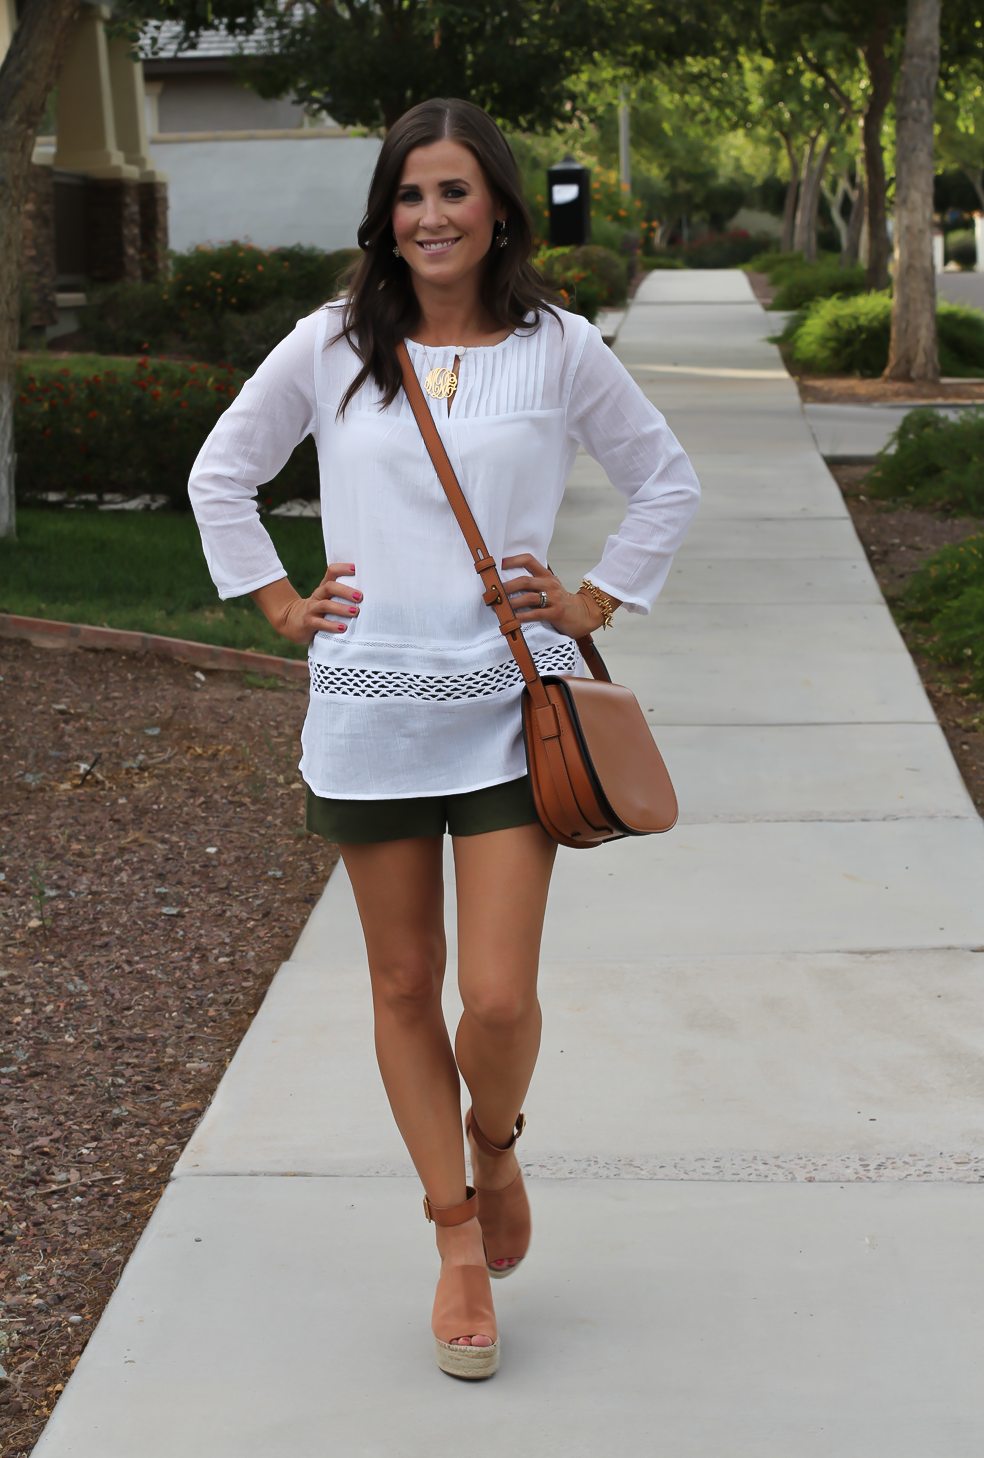 Gauze White Lace Tunic, Green Linen Shorts, Brown Suede Espadrilles, Brown Leather Crossbody Bag, Old Navy, J.Crew, Chloe, Tory Burch 13